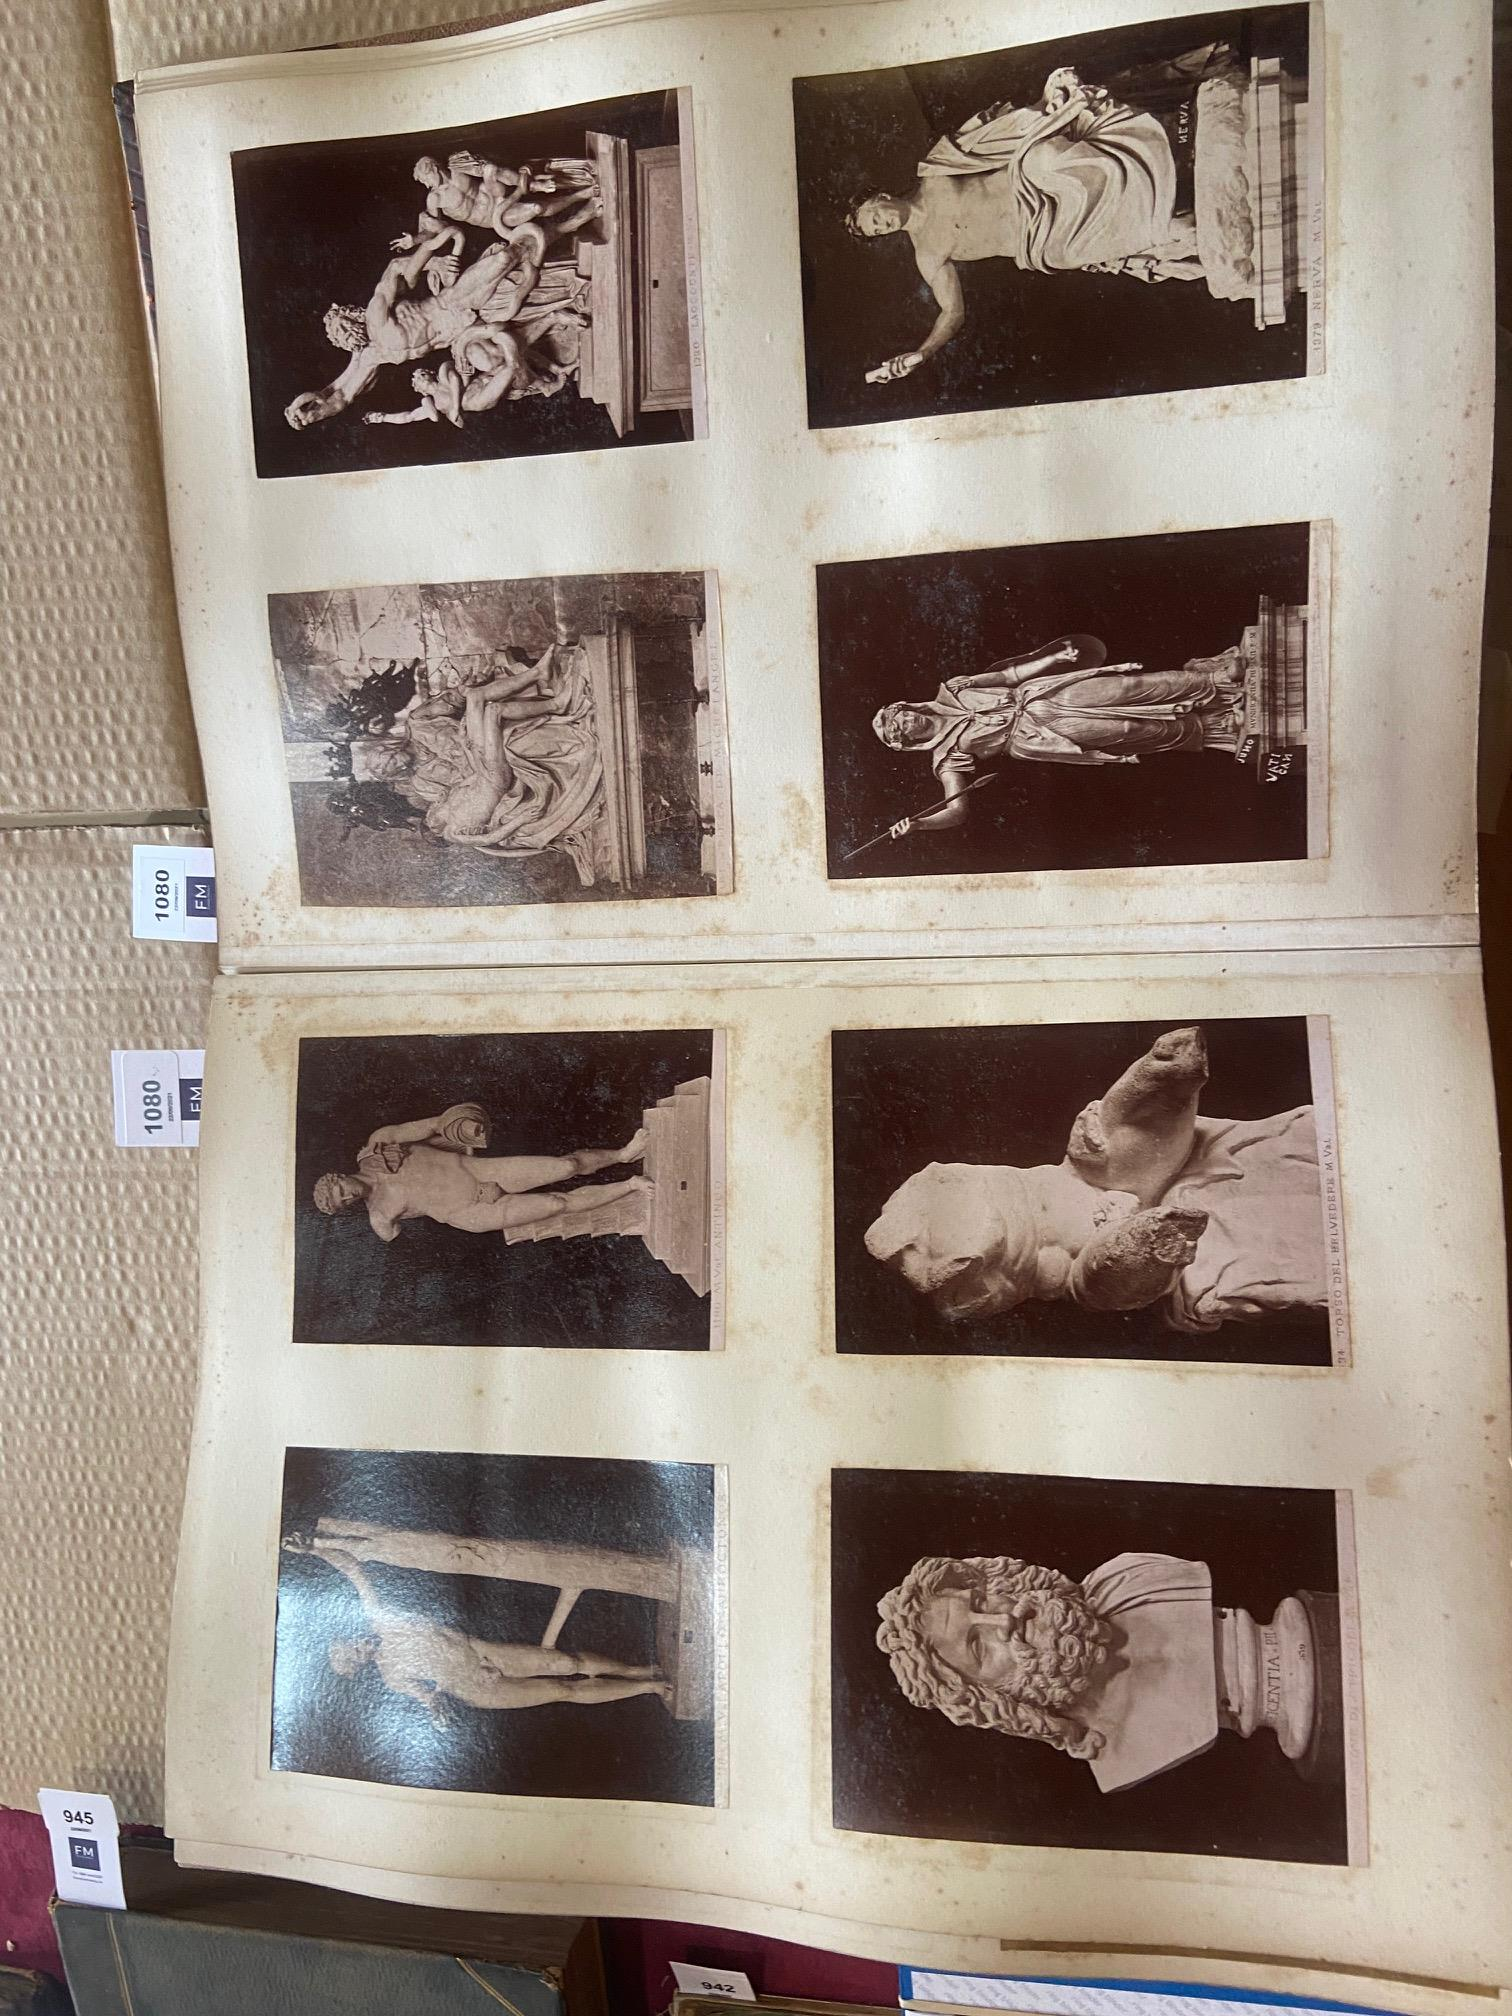 Photographs: Two large folio Albums of Photographs, each c. 1870 - 1890's. One Album contains - Image 30 of 31